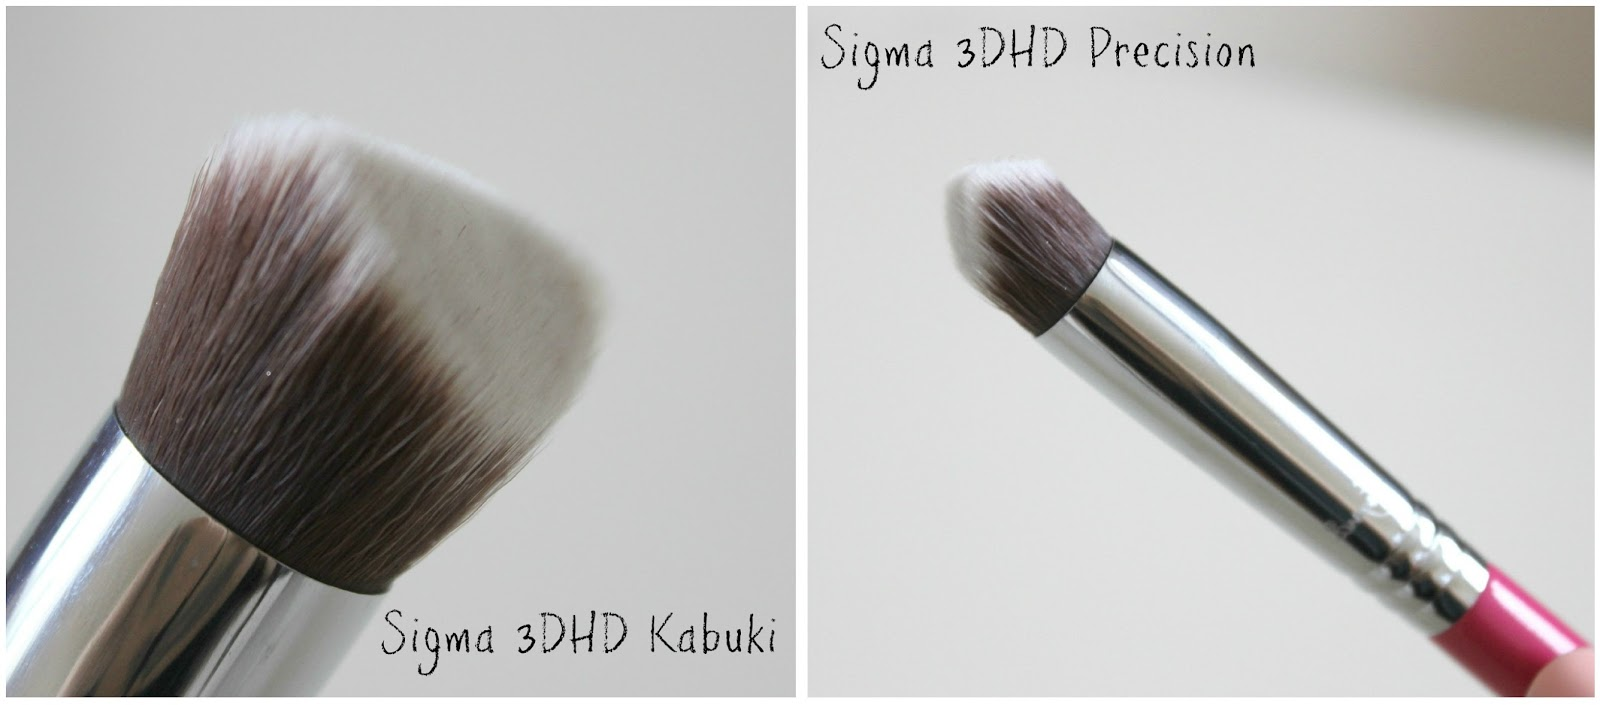 A picture of the Sigma 3DHD Kabuki brush and the 3DHD Precision brush